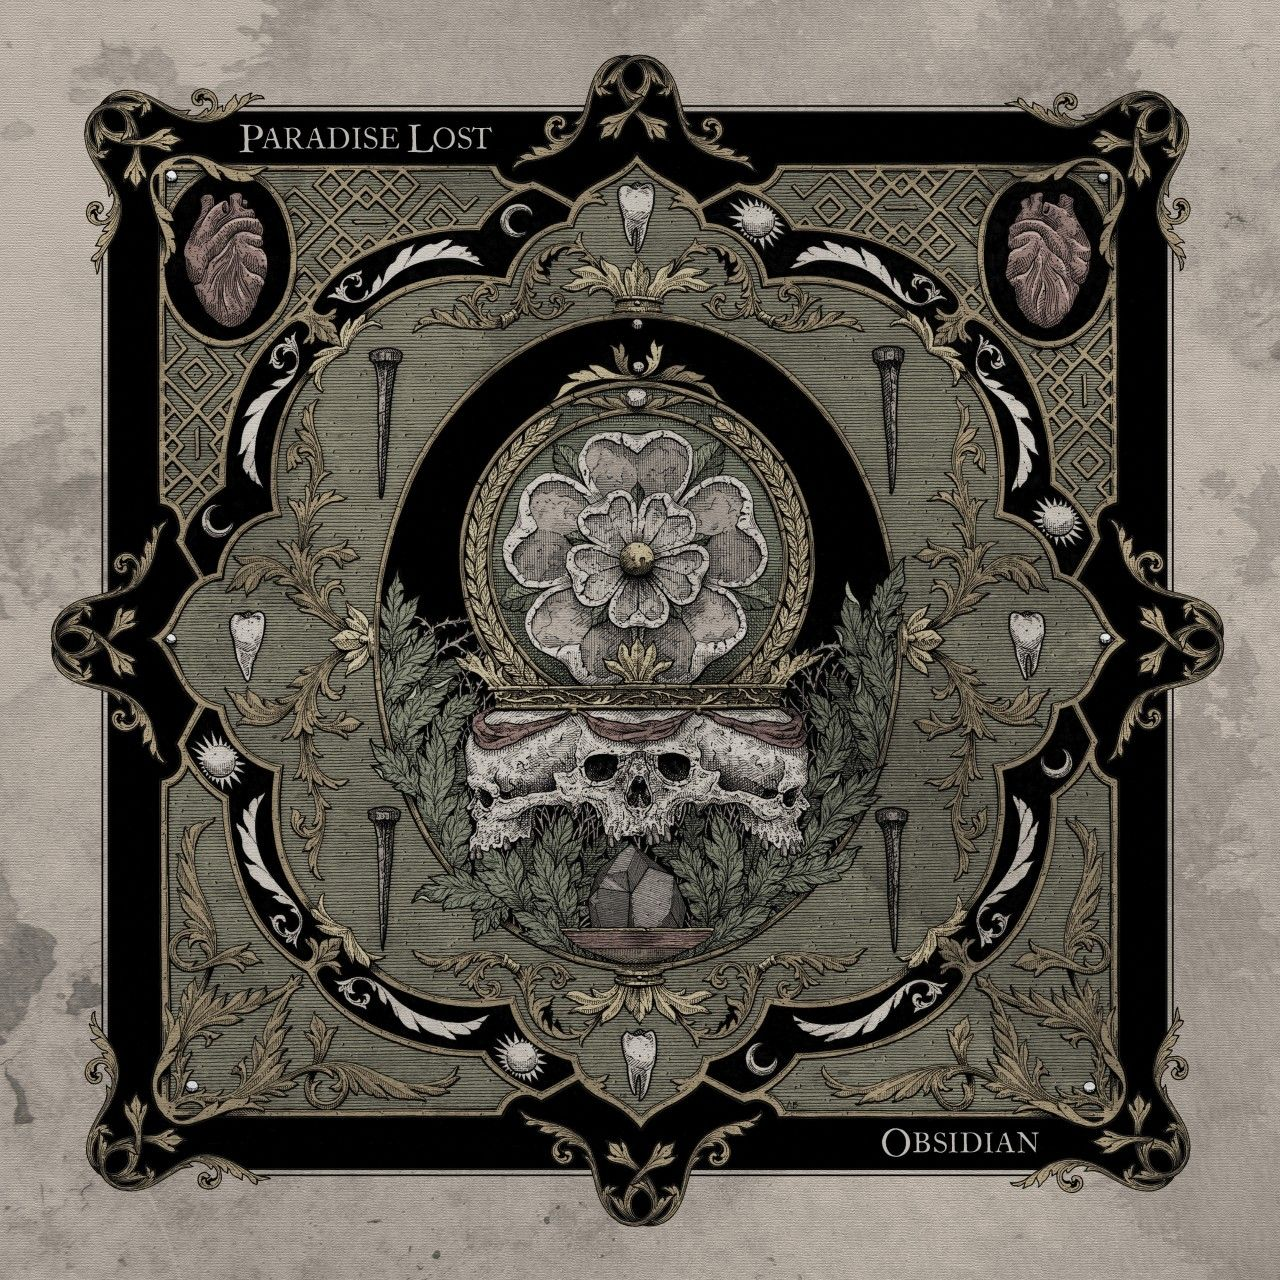 Paradise Lost - Obsidian, CD-Cover